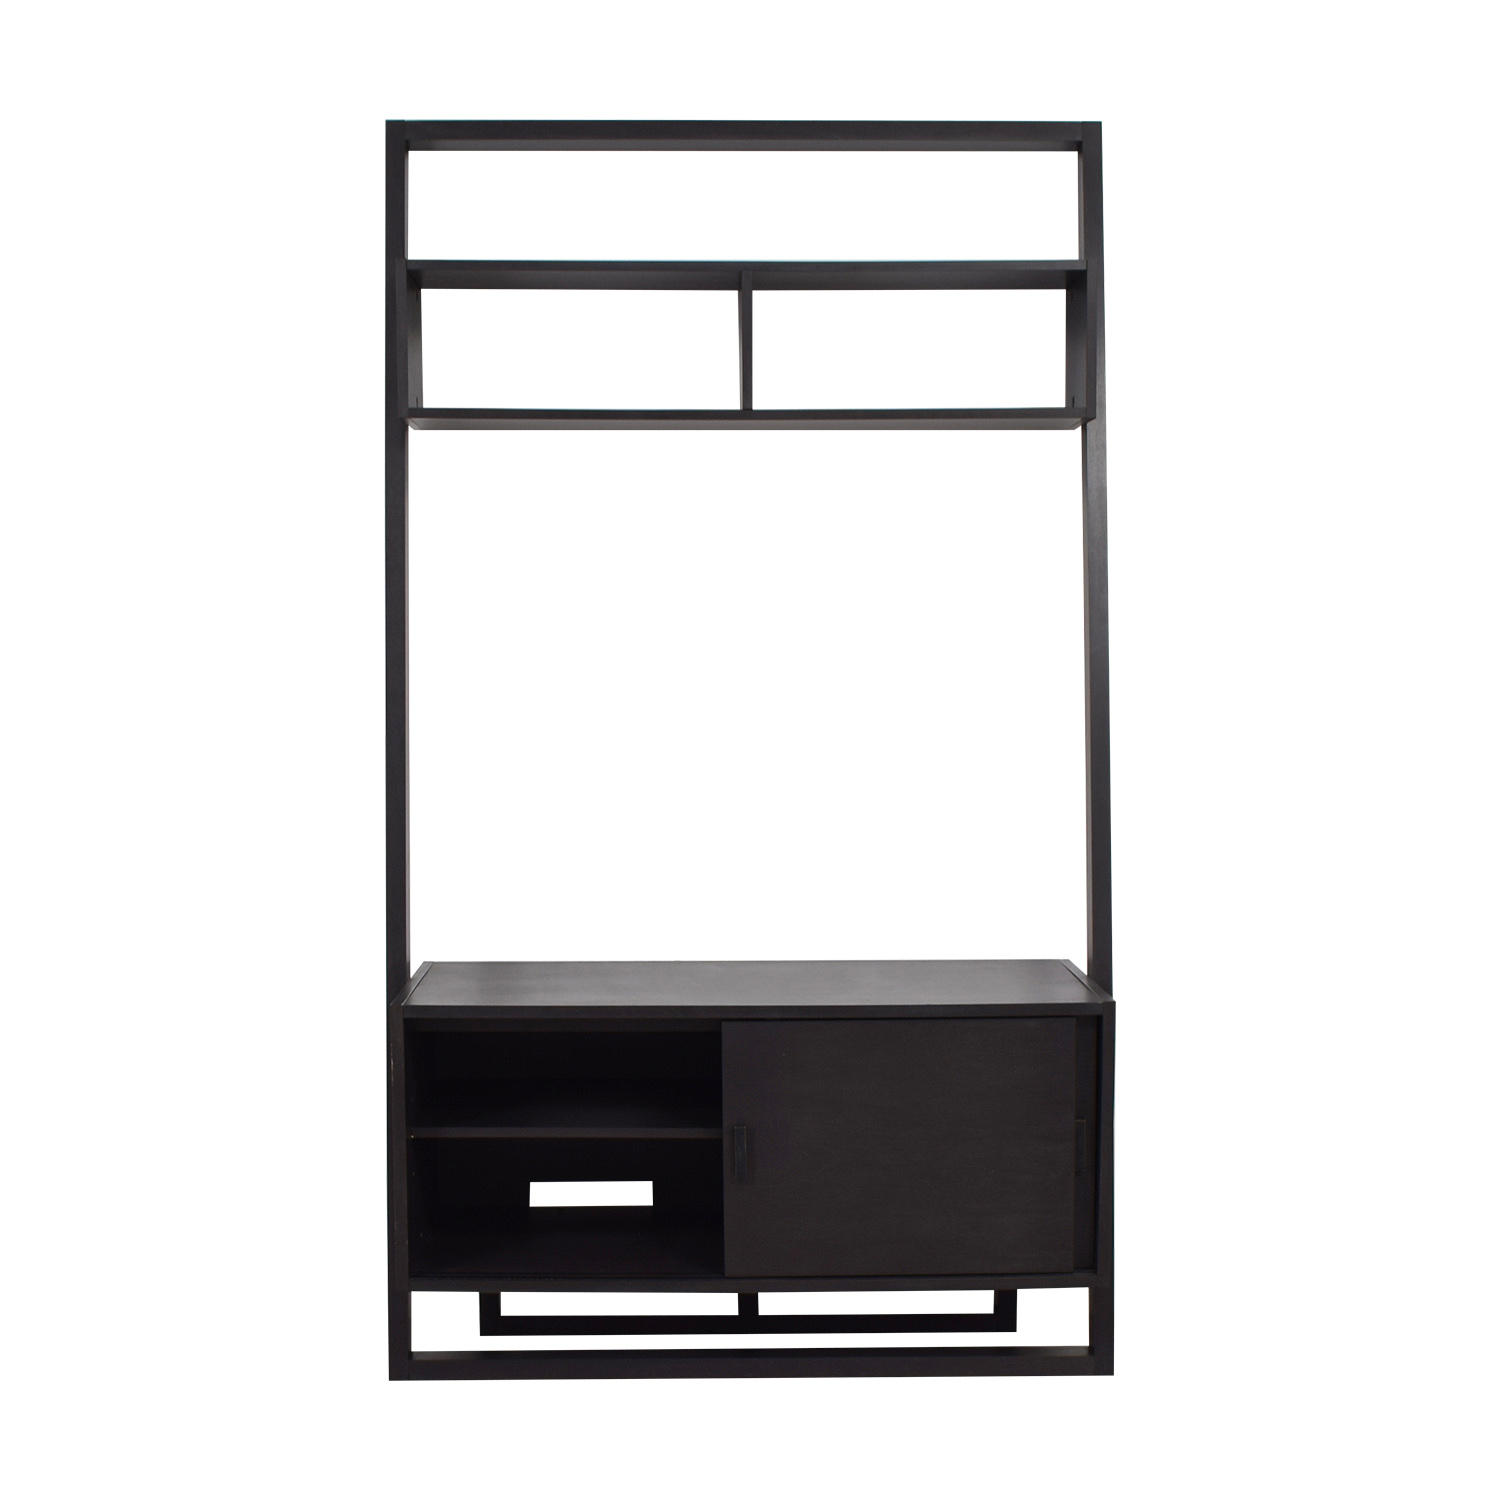 Crate & Barrel Leaning TV Stand / Storage